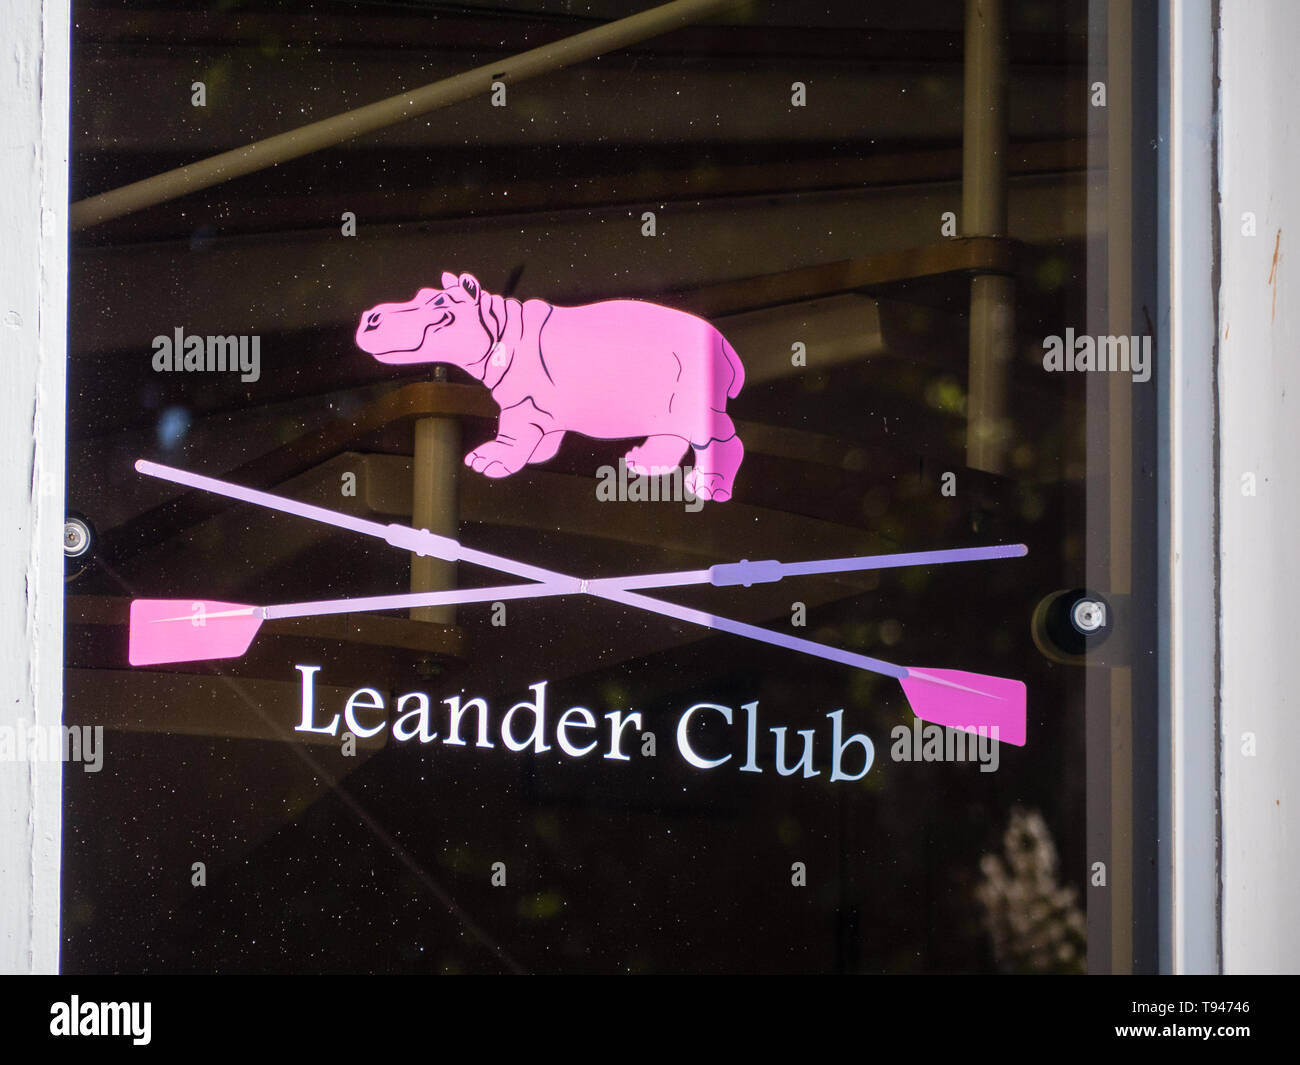 Leander Club, Third Oldest Rowing Club, in The World, Henley-on-Thames, Berkshire, England, UK, GB. Stock Photo